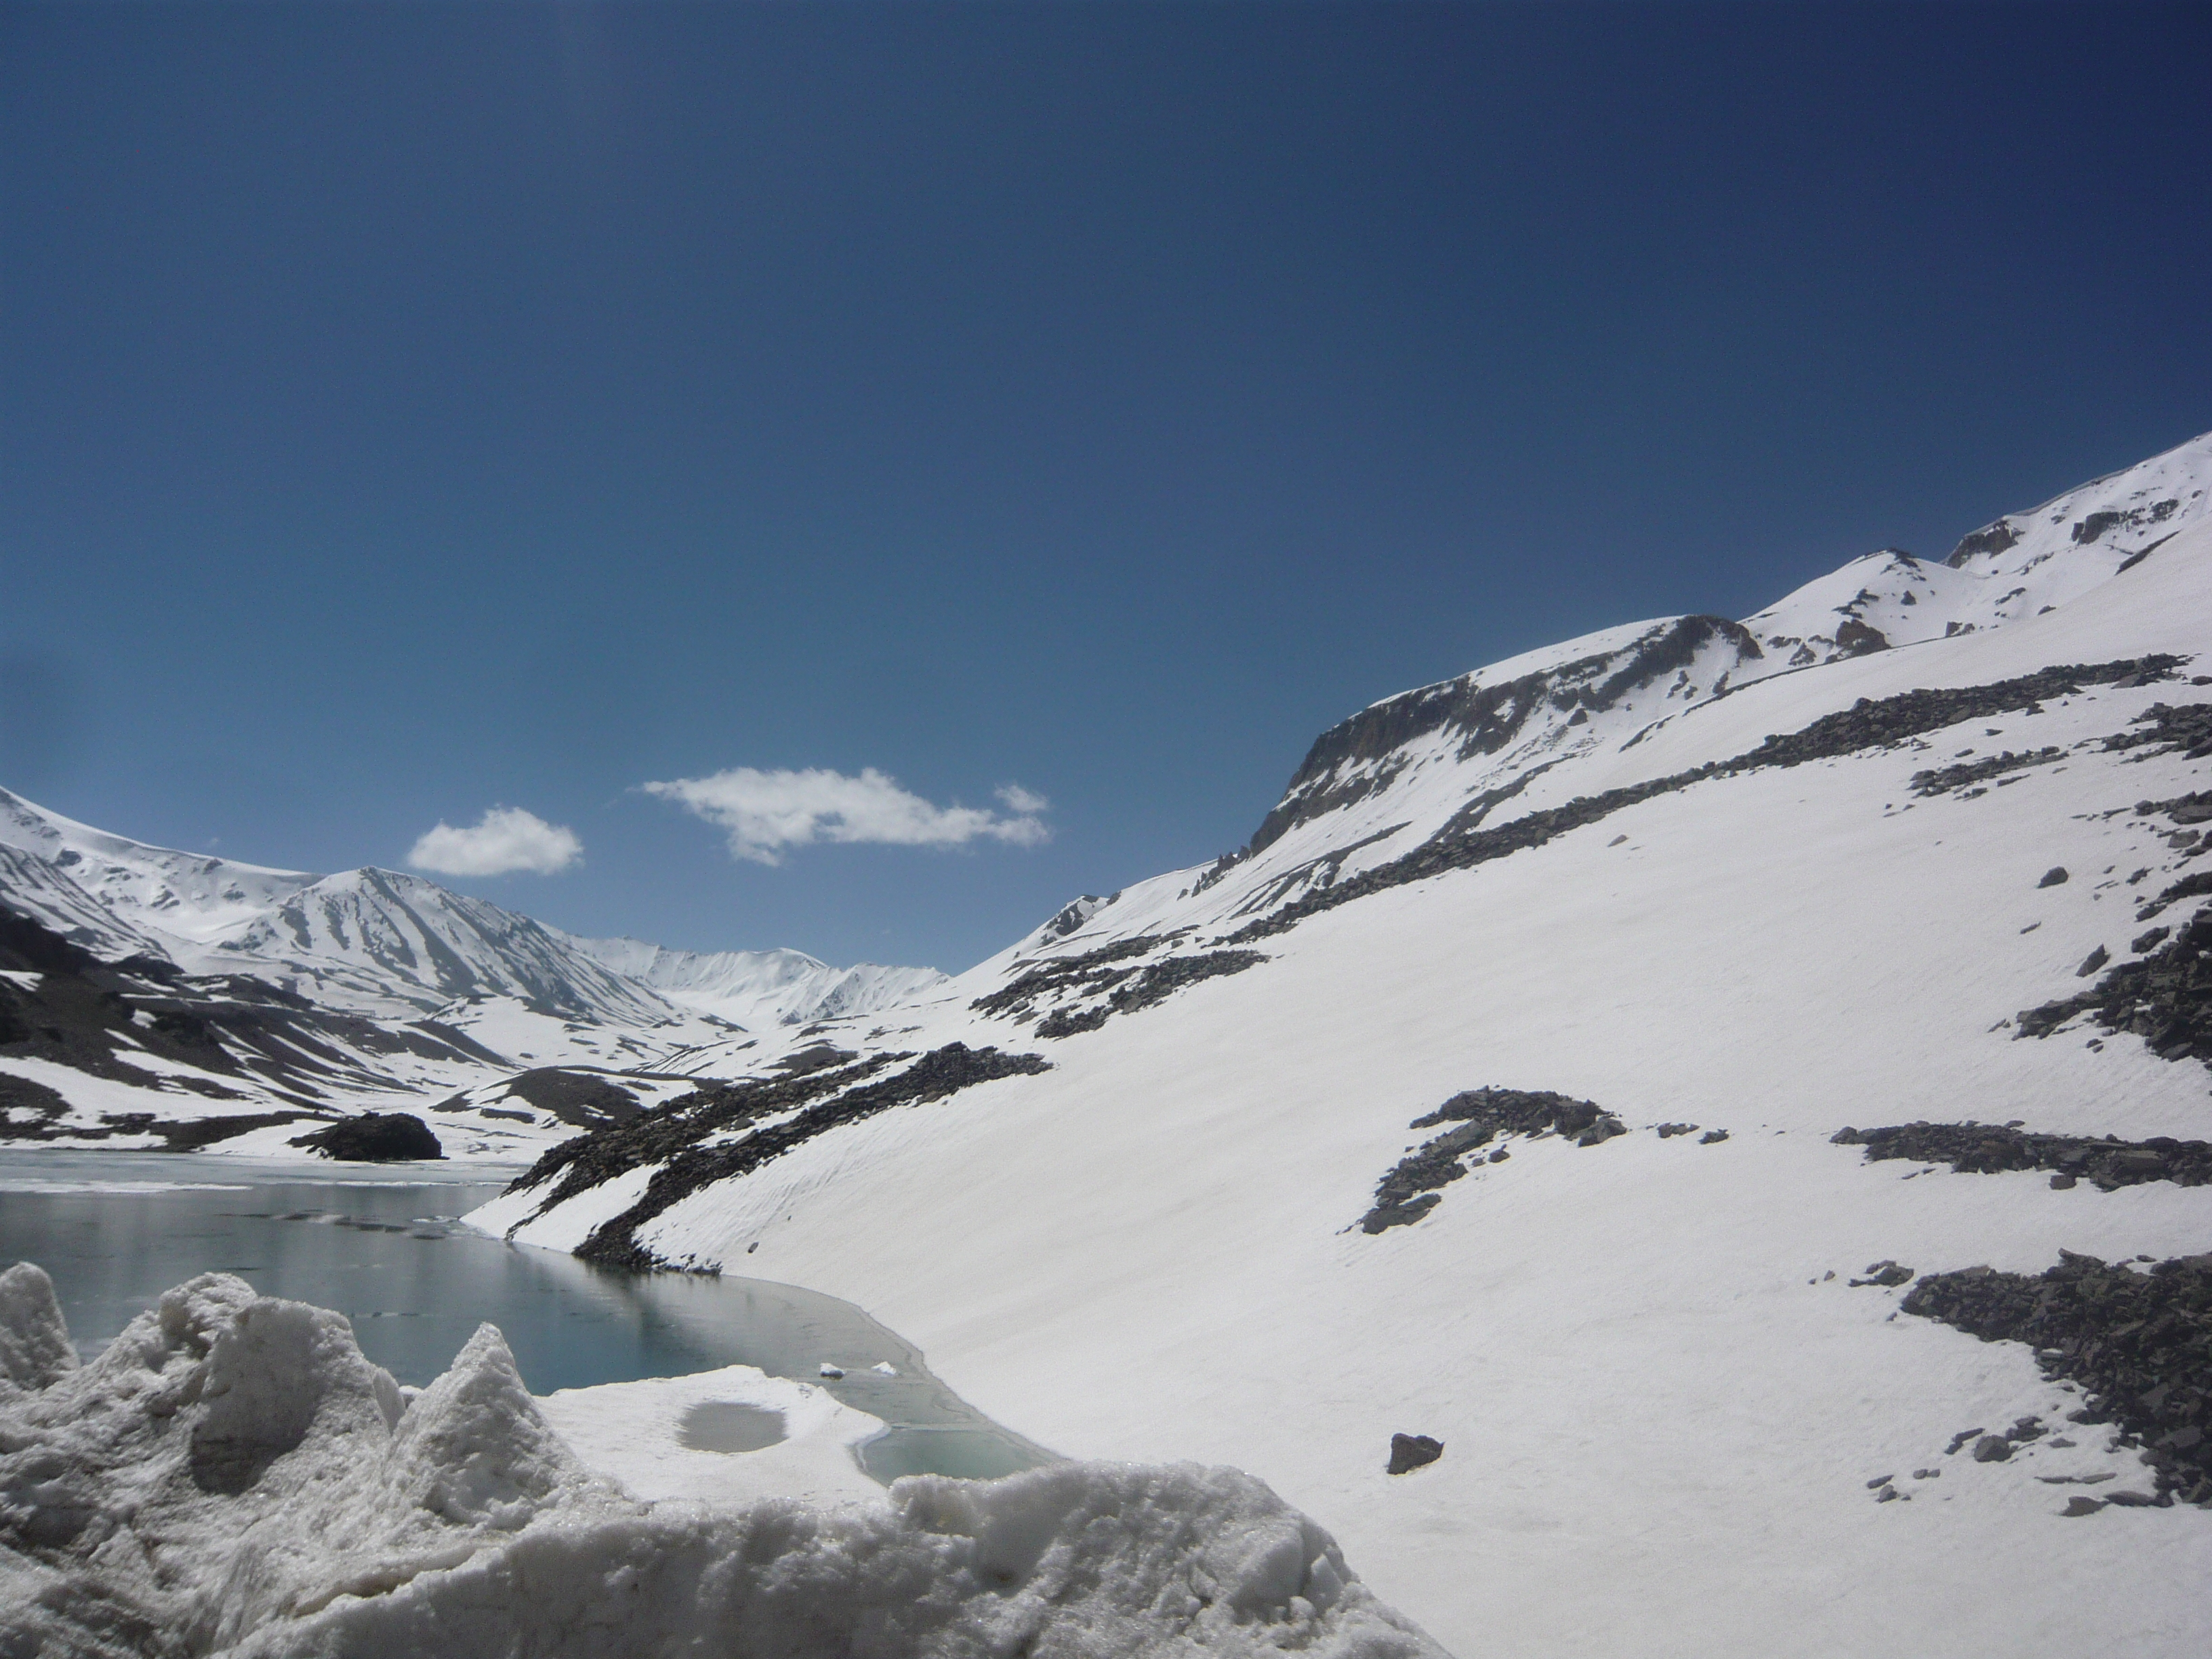 Frozen River Trek (Chadar Route)